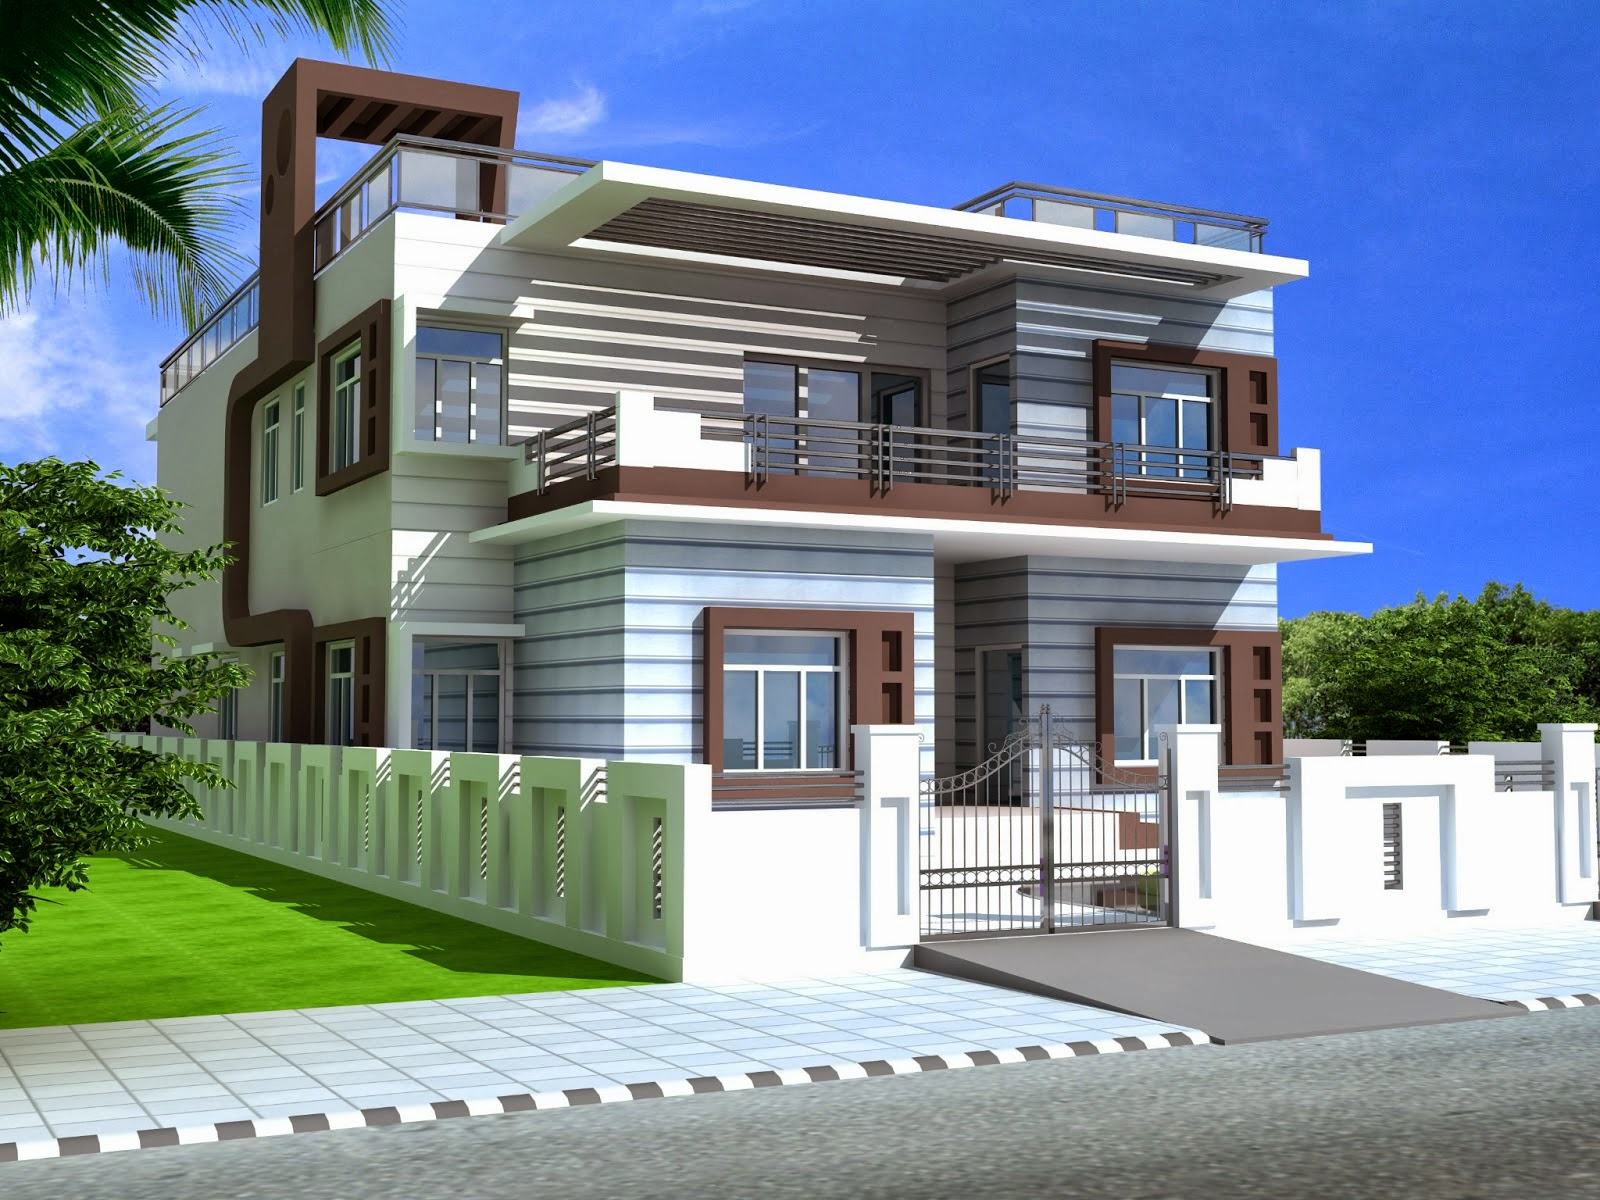 Foundation dezin decor duplex homes 3ds max work for Design duplex house architecture india